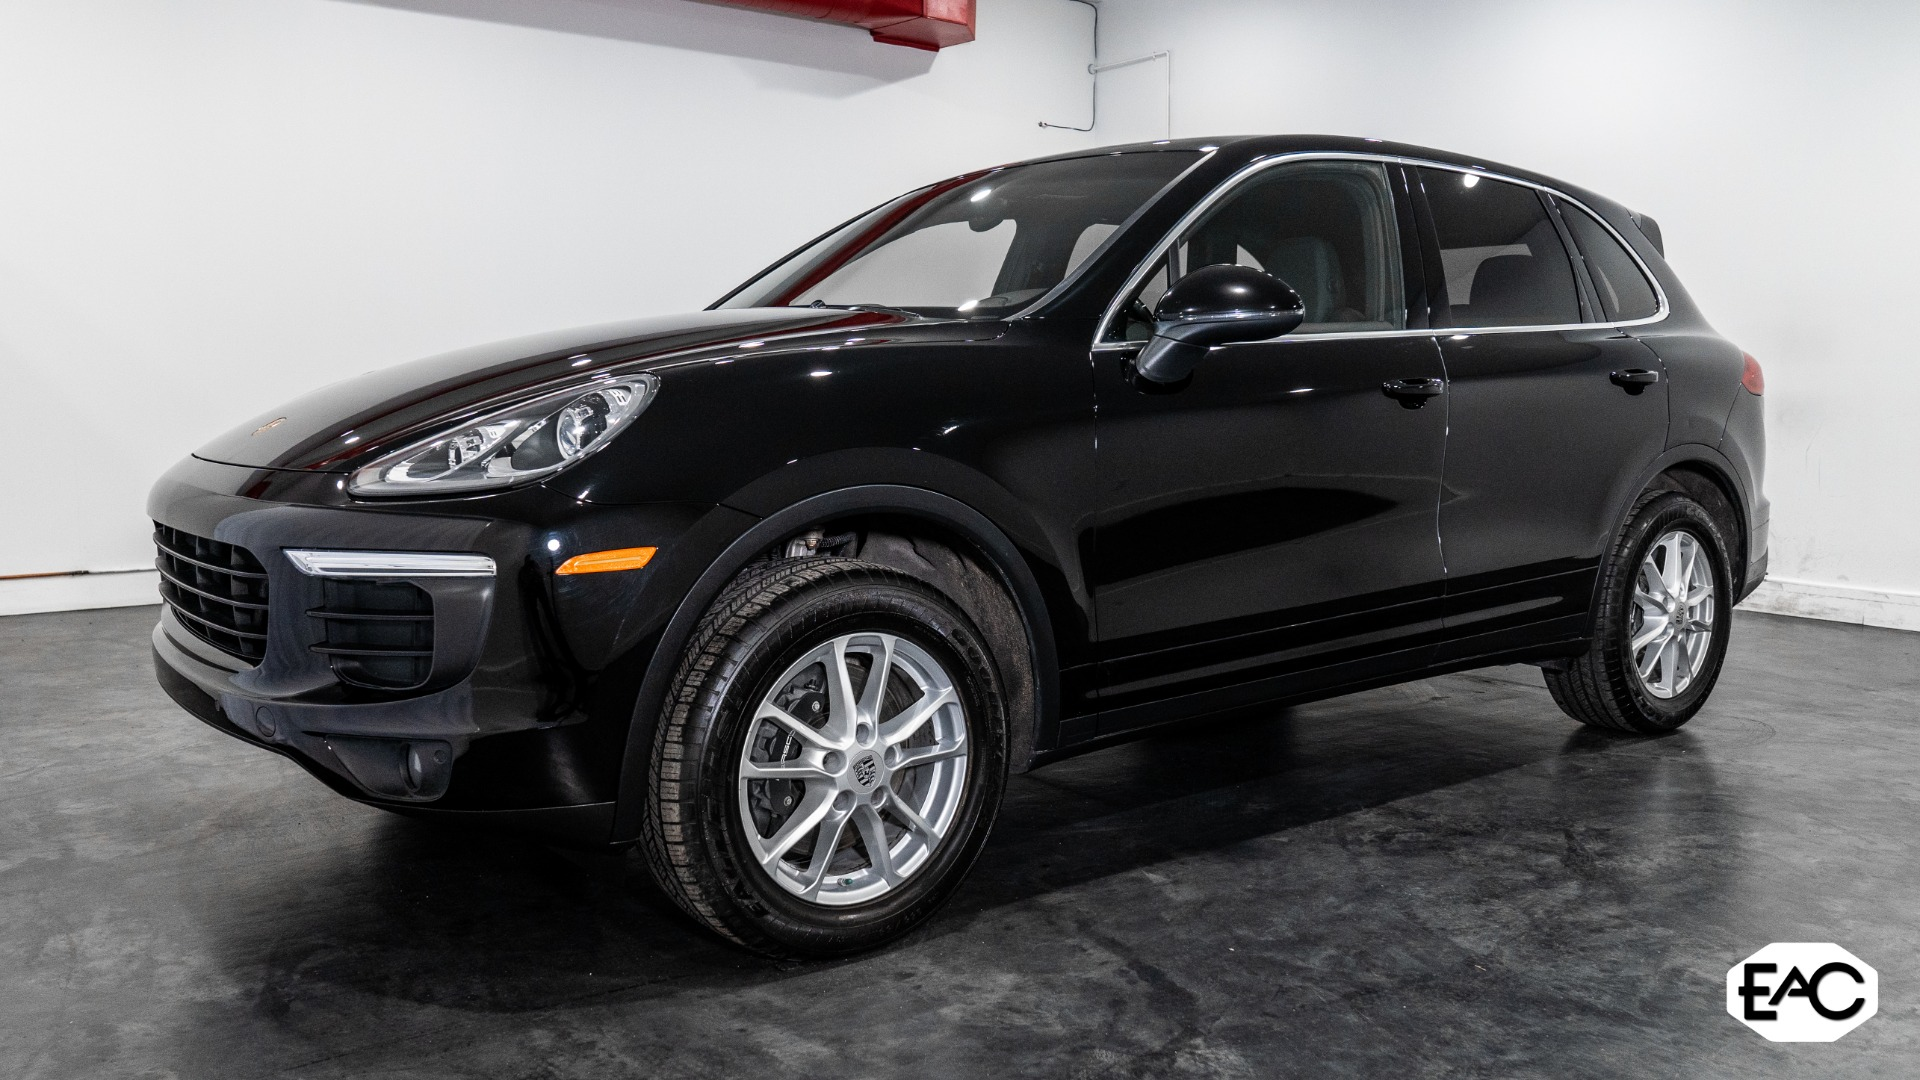 Used 2017 Porsche Cayenne Base for sale $38,990 at Empire Auto Collection in Warren MI 48091 1